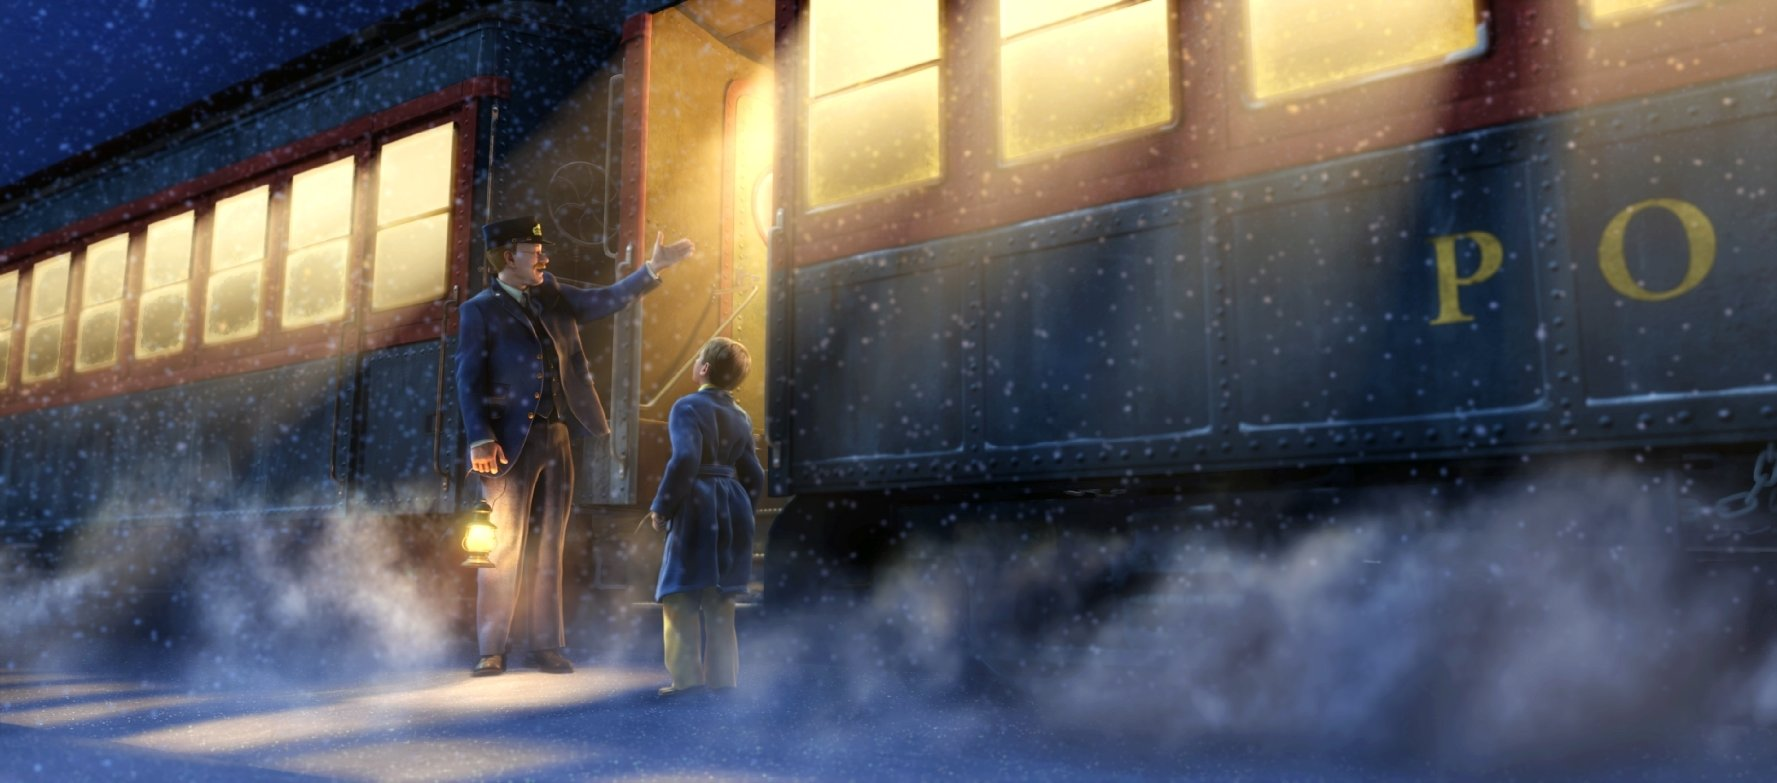 The+Polar+Express-(2013)-Movie+review-Deborah+Reed-DebaDoTell-2